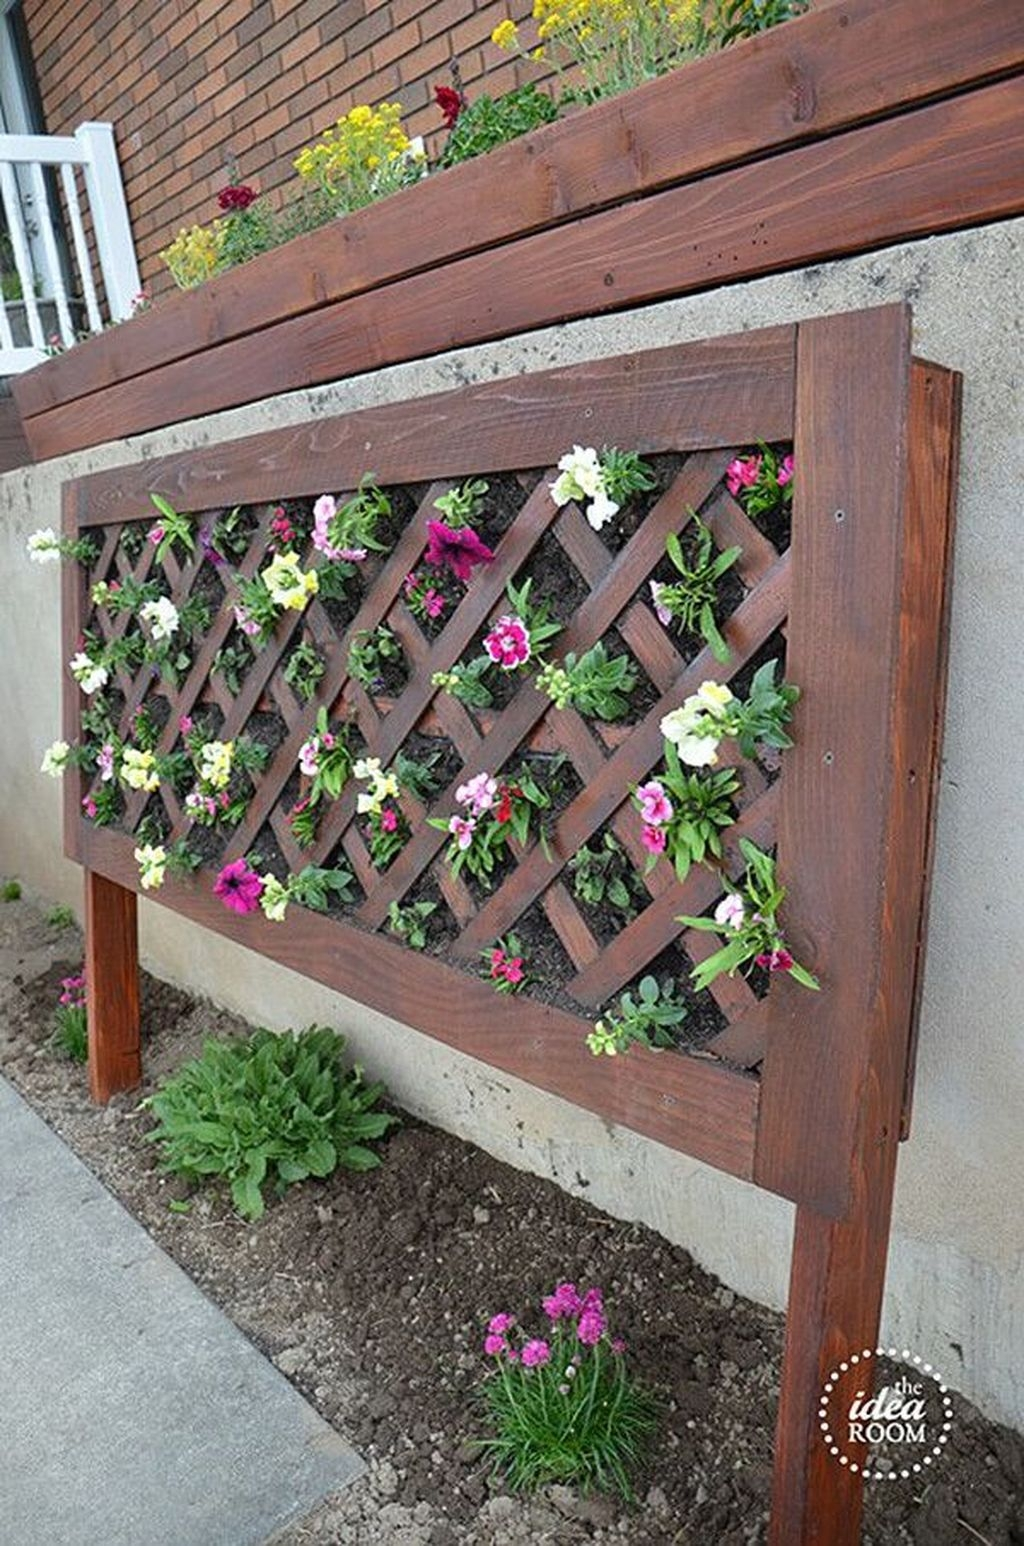 Fascinating One Day Backyard Project Ideas For Outdoor Space44